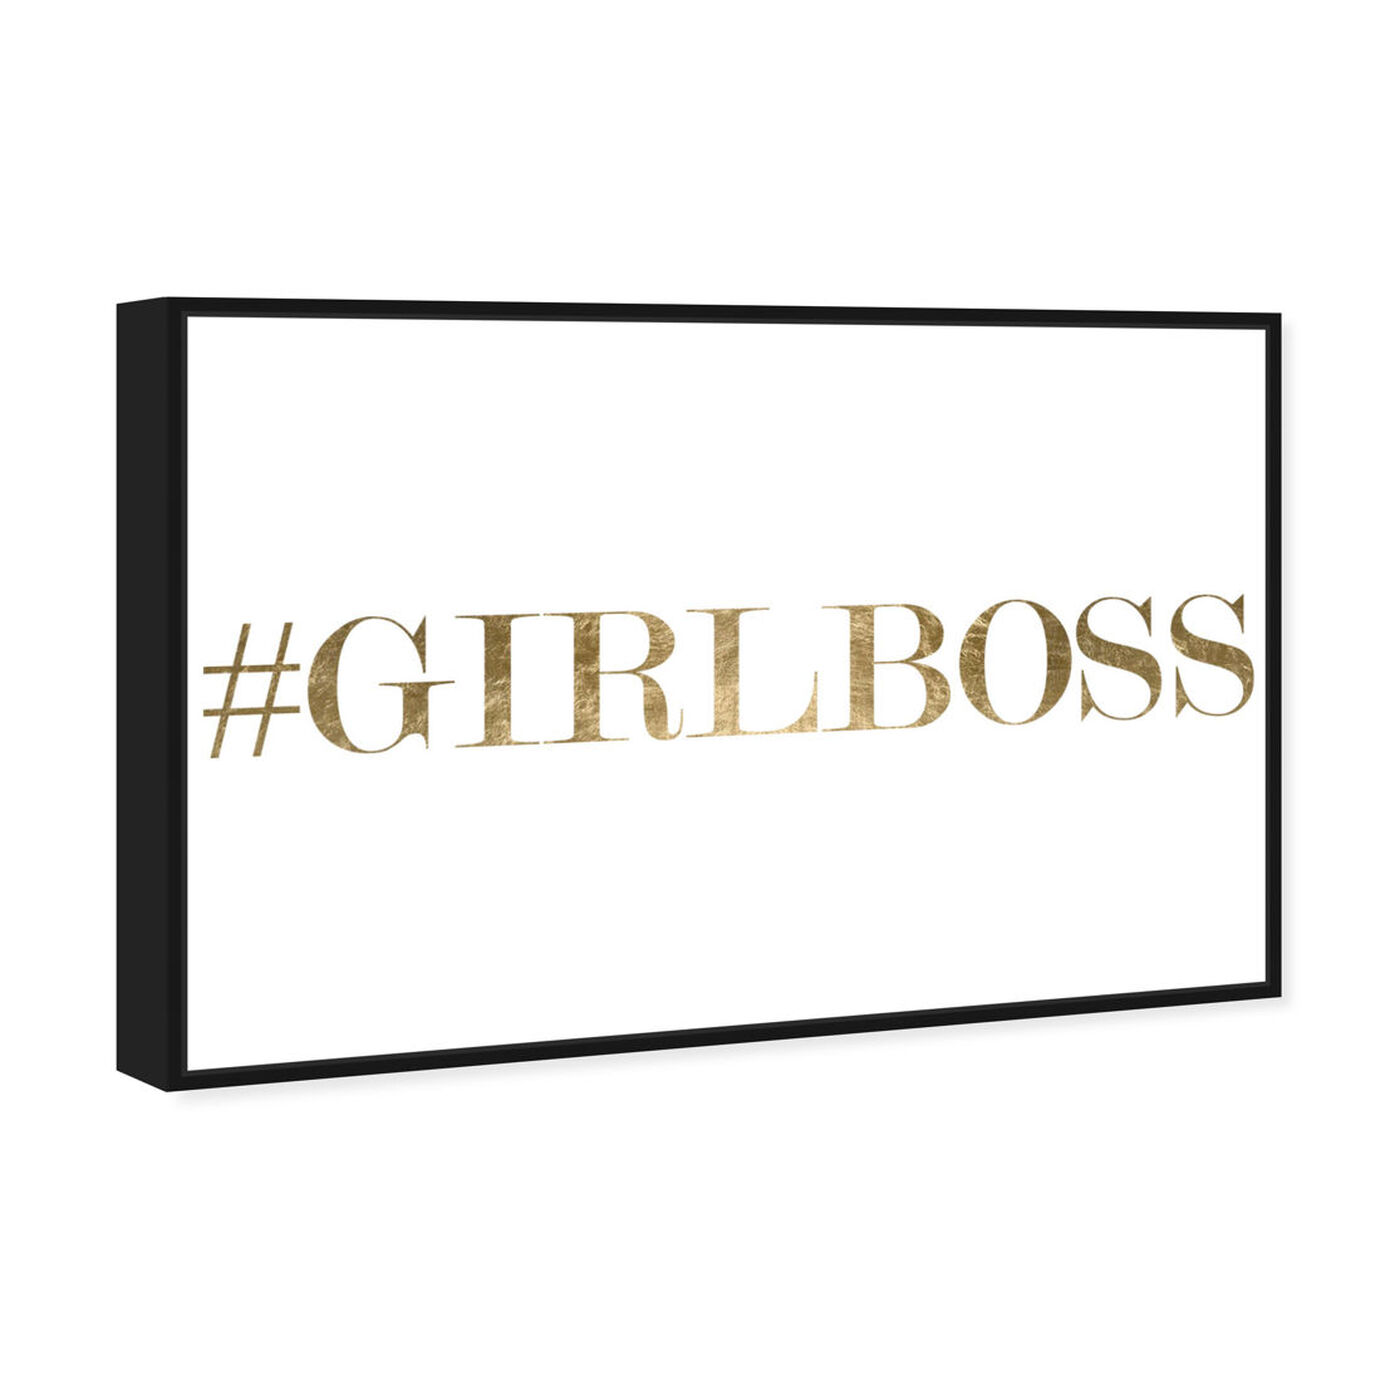 Angled view of Girlboss featuring typography and quotes and empowered women quotes and sayings art.